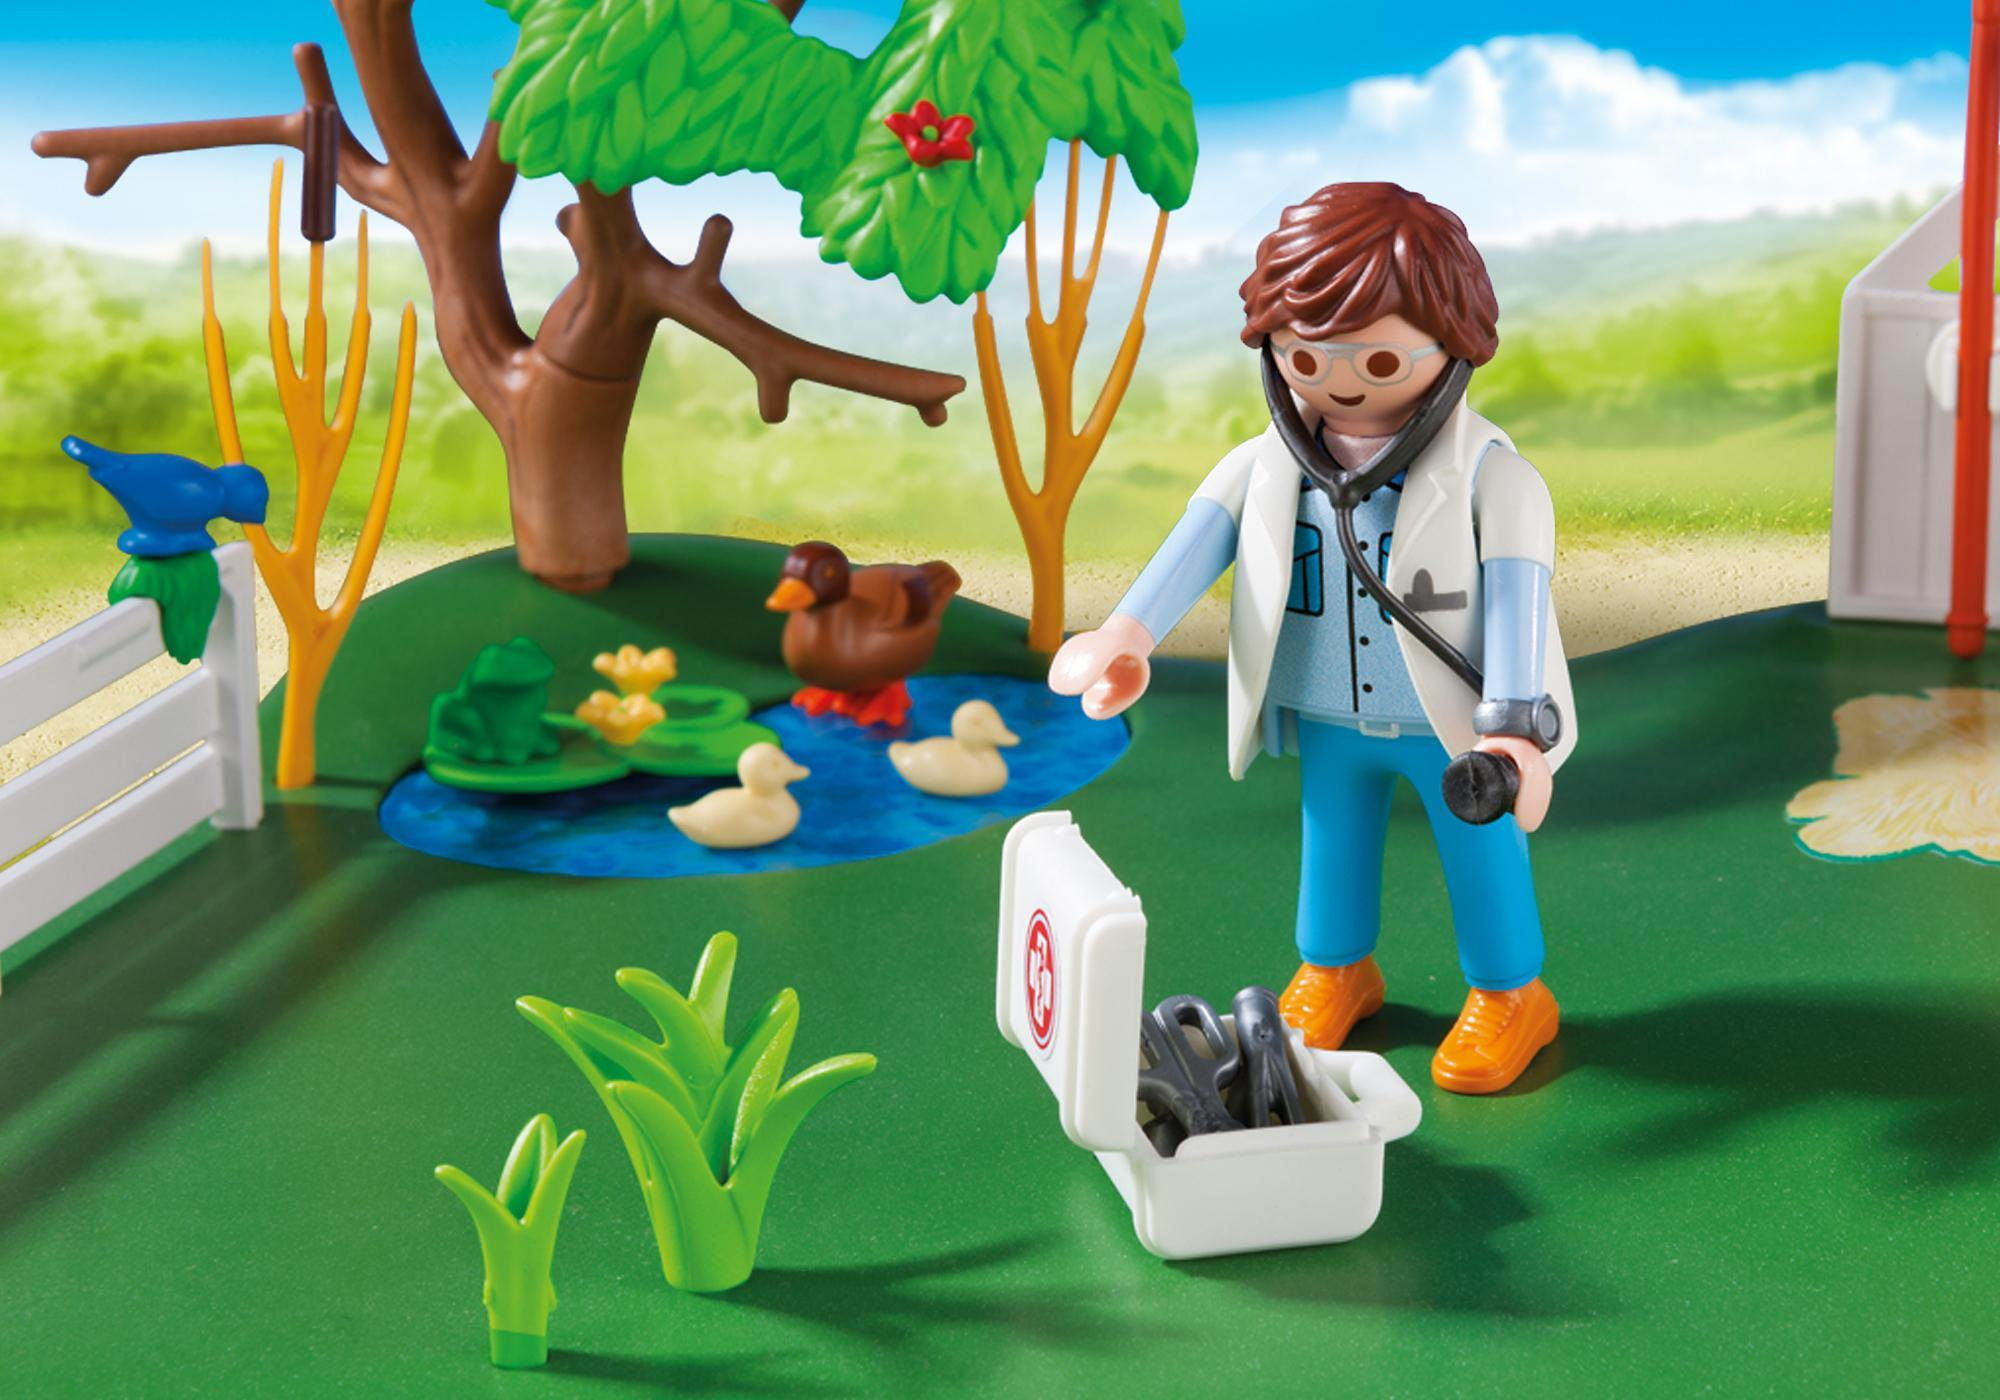 http://media.playmobil.com/i/playmobil/6147_product_extra3